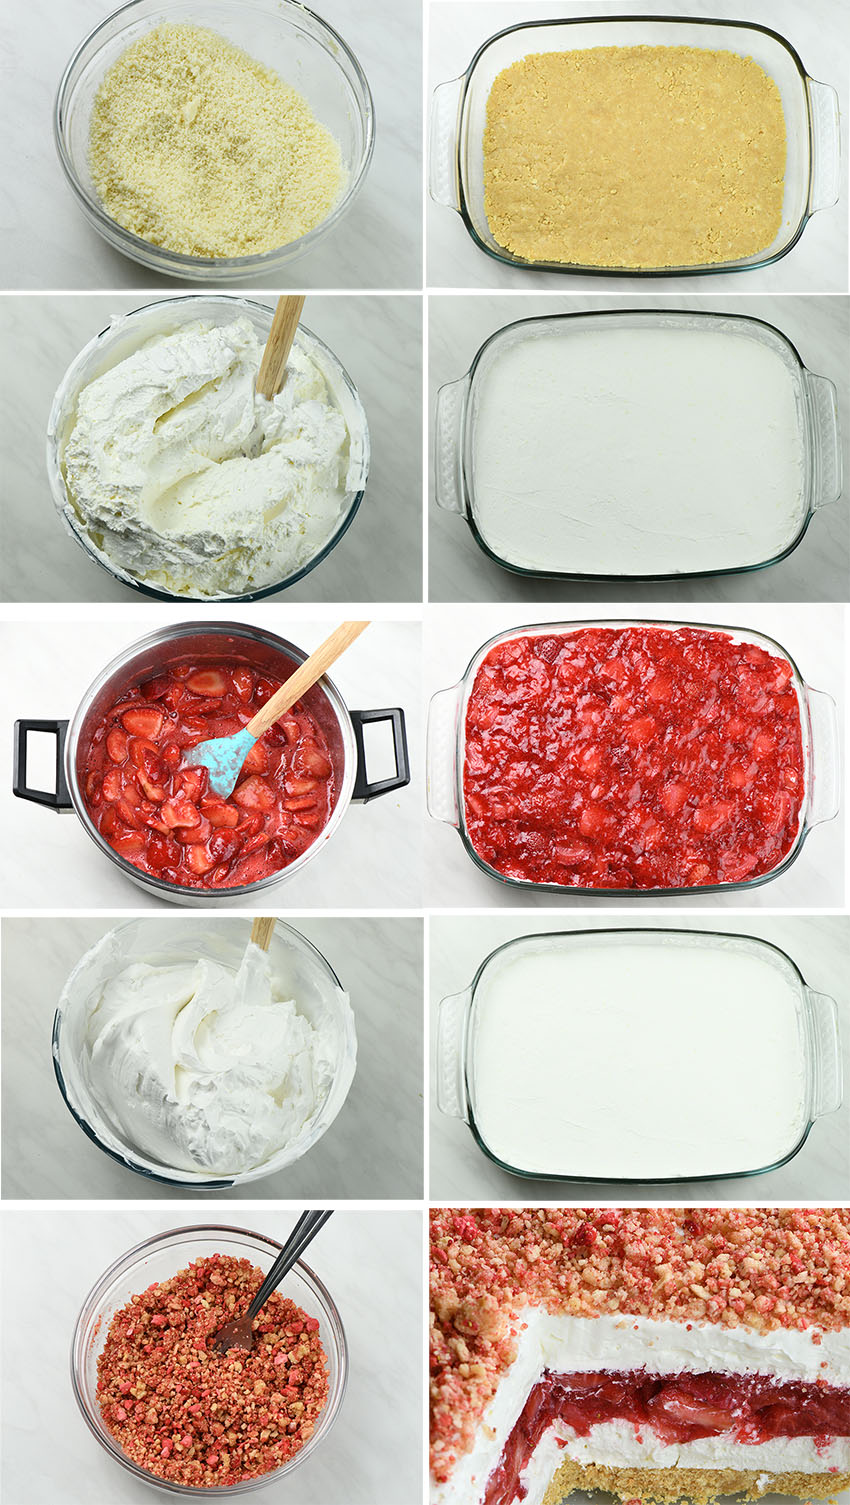 Strawberry Jello Lasagna step by step instruction images.